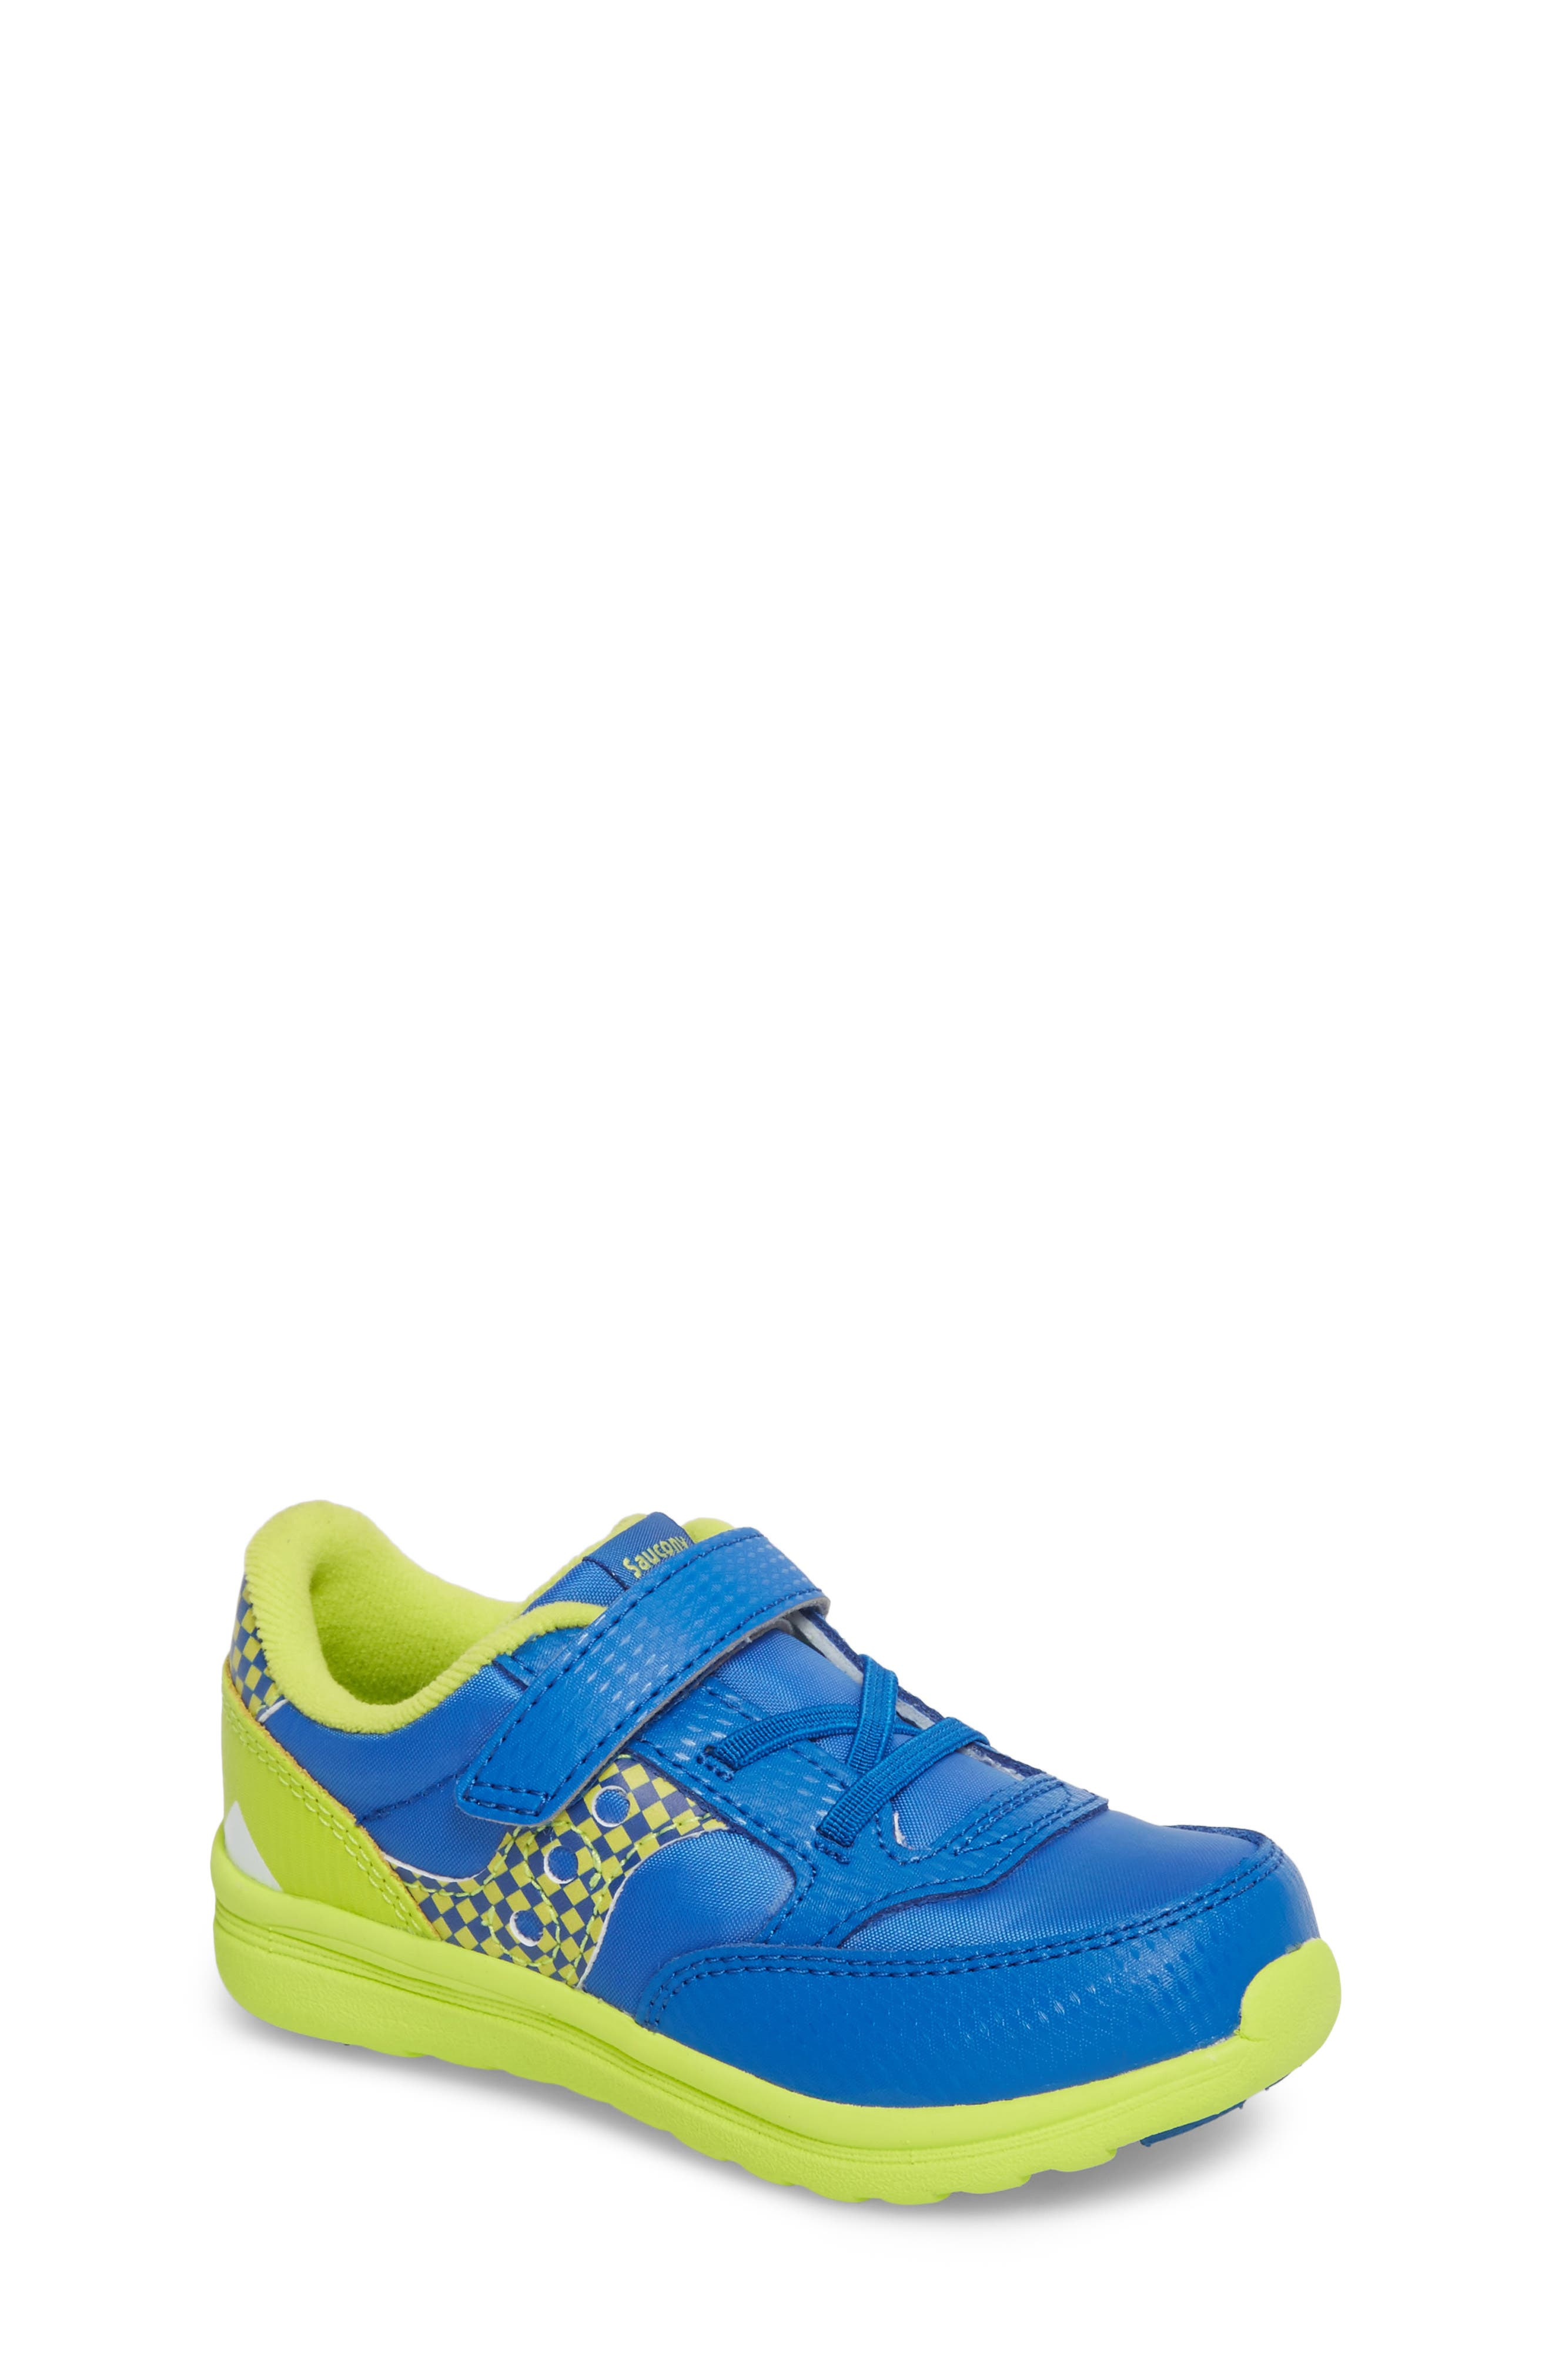 Jazz Lite Sneaker,                             Main thumbnail 1, color,                             400